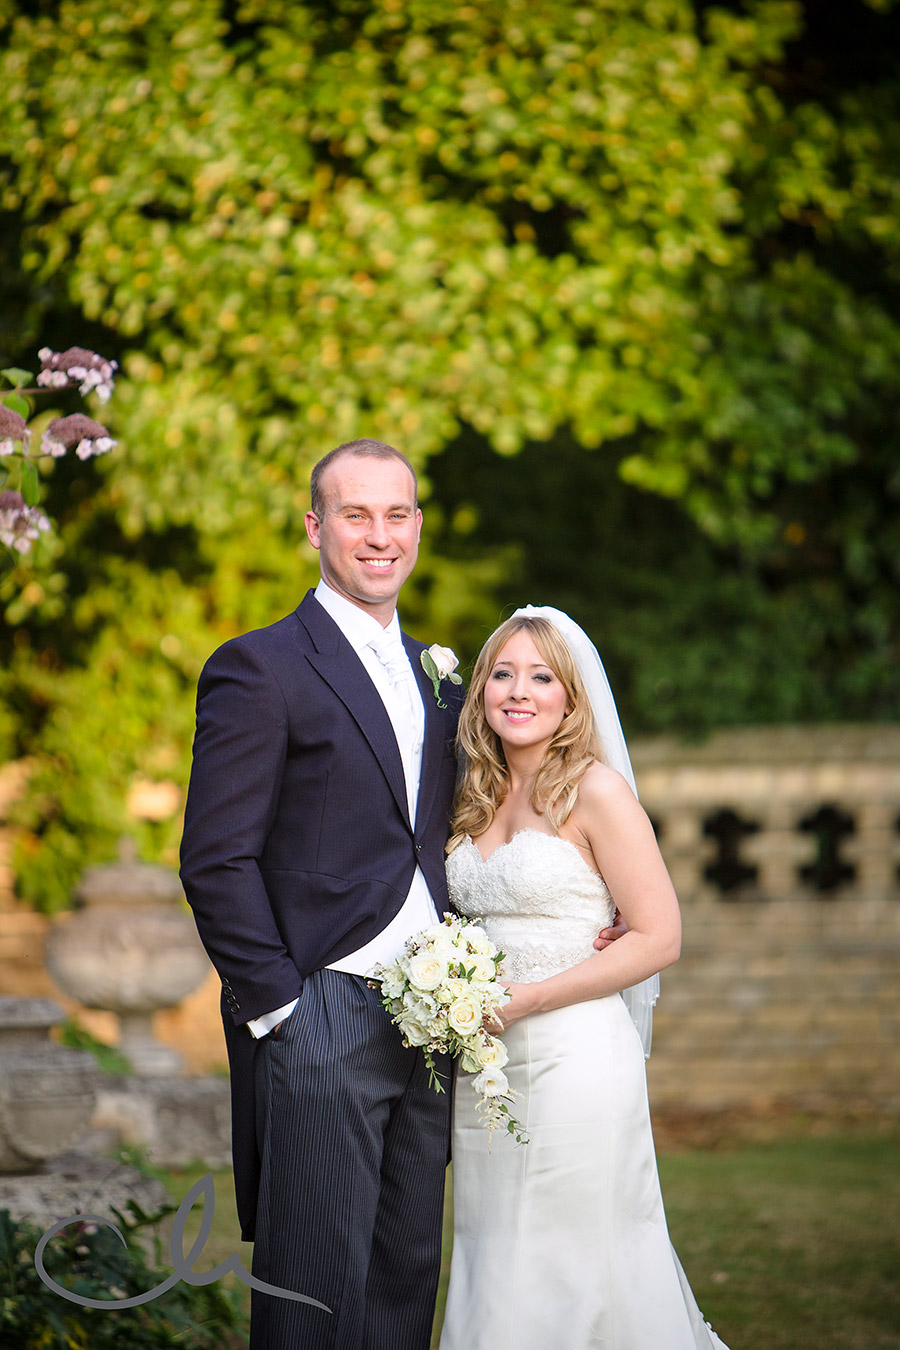 Sundridge-Park-Manor-Wedding-Photographer-79